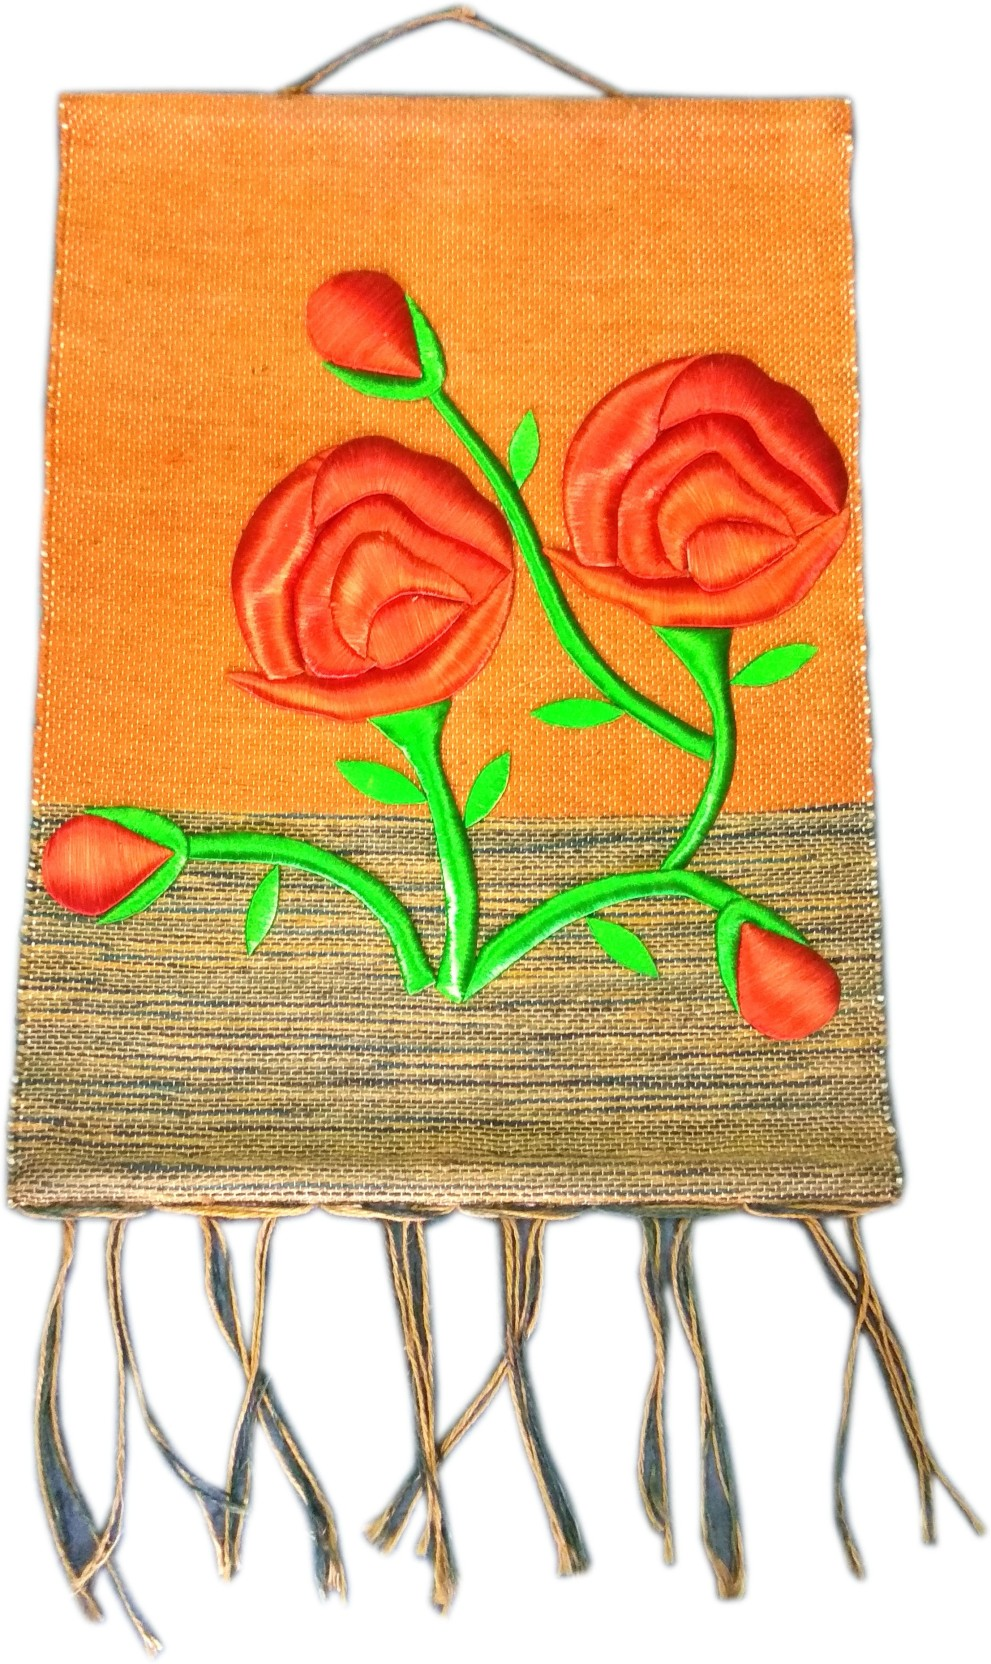 991x1664 Mgs Amazing Varanasi Famous Handcrafted Embroided Wall Hanging